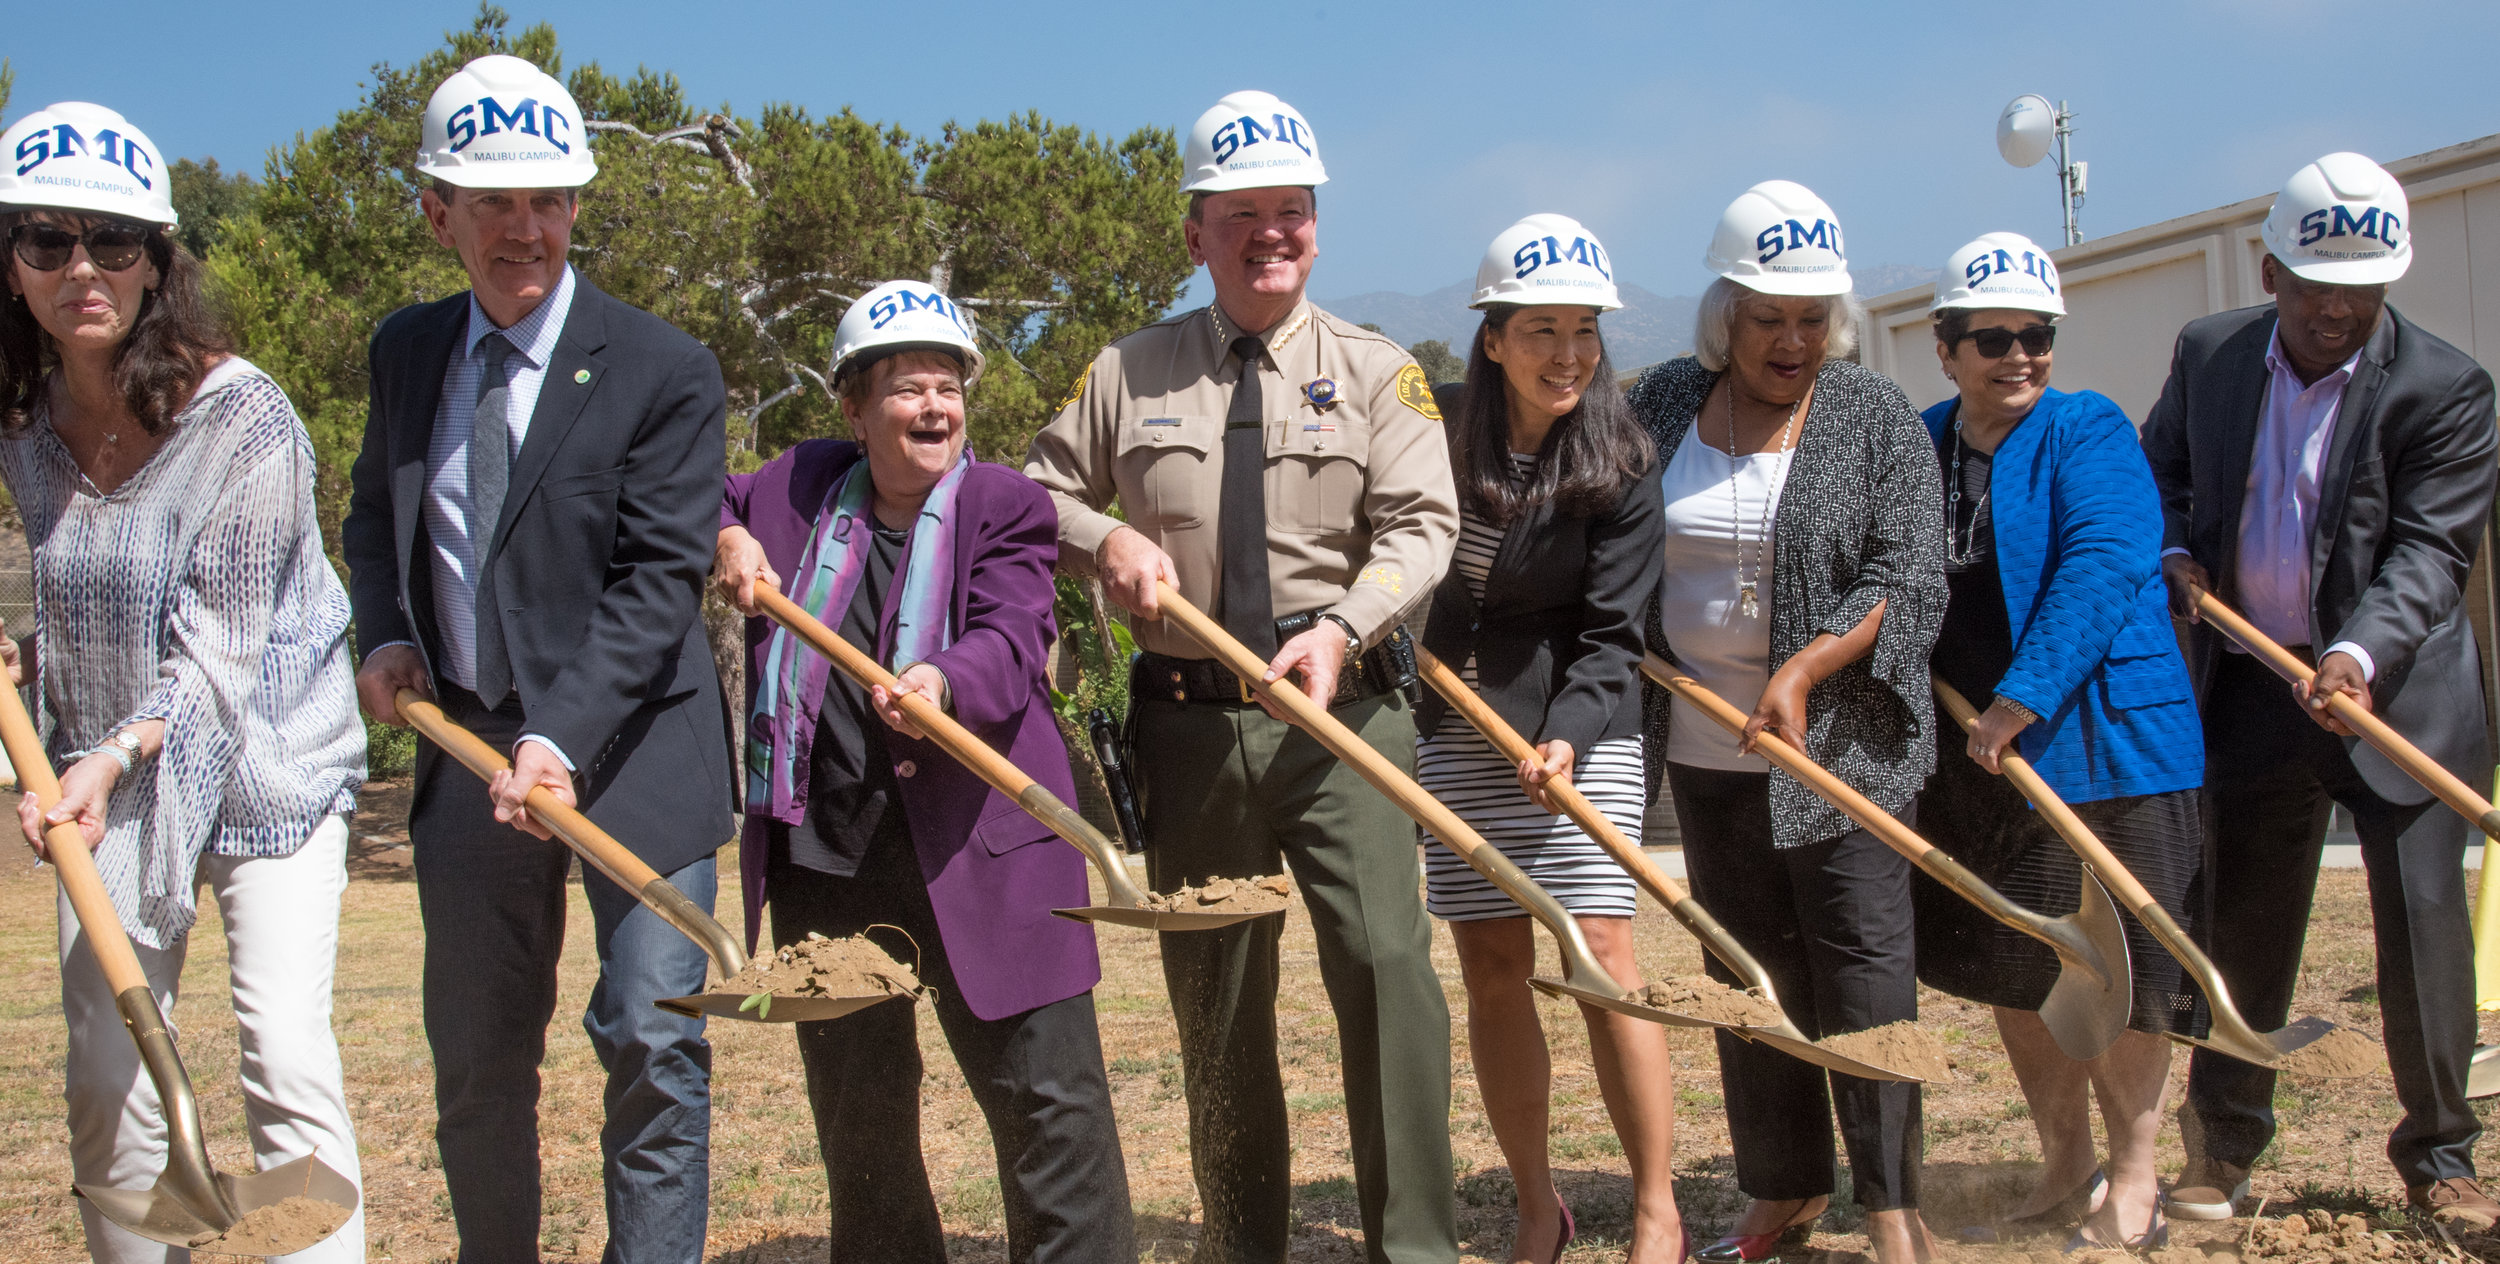 Santa Monica College President Kathryn Jeffery (third from right), Sheriff Jim McDonald (center), Mayor Rick Mullen (second from left), and others begin the official groundbreaking of the Santa Monica College Malibu Campus & Los Angeles County Sheriff's Substation on September 21, 2018 in Malibu, California. The collaborative project is set to be completed by 2022.